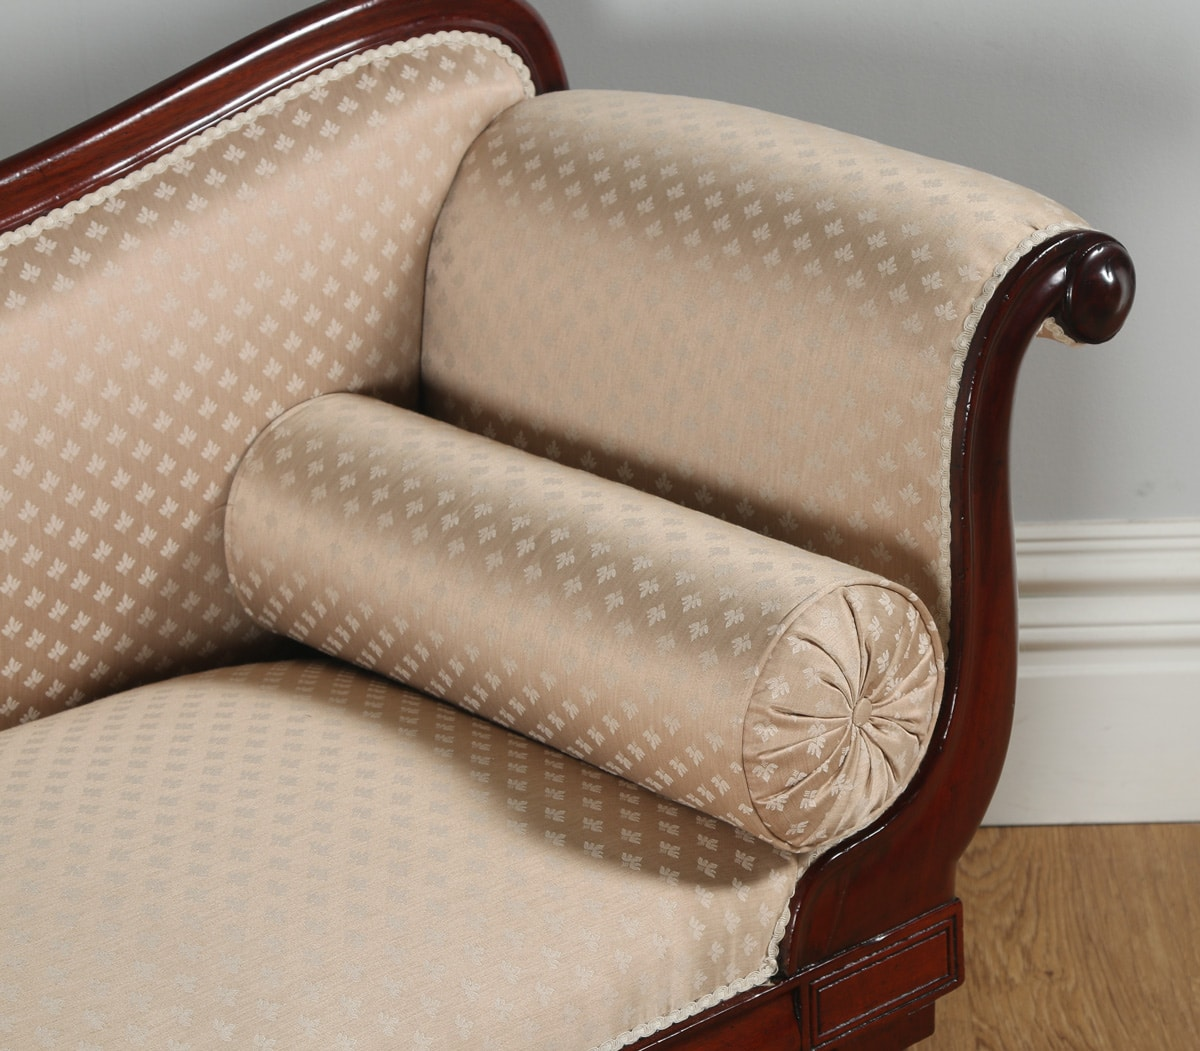 Antique english regency mahogany upholstered chaise longue for Chaise longue in english